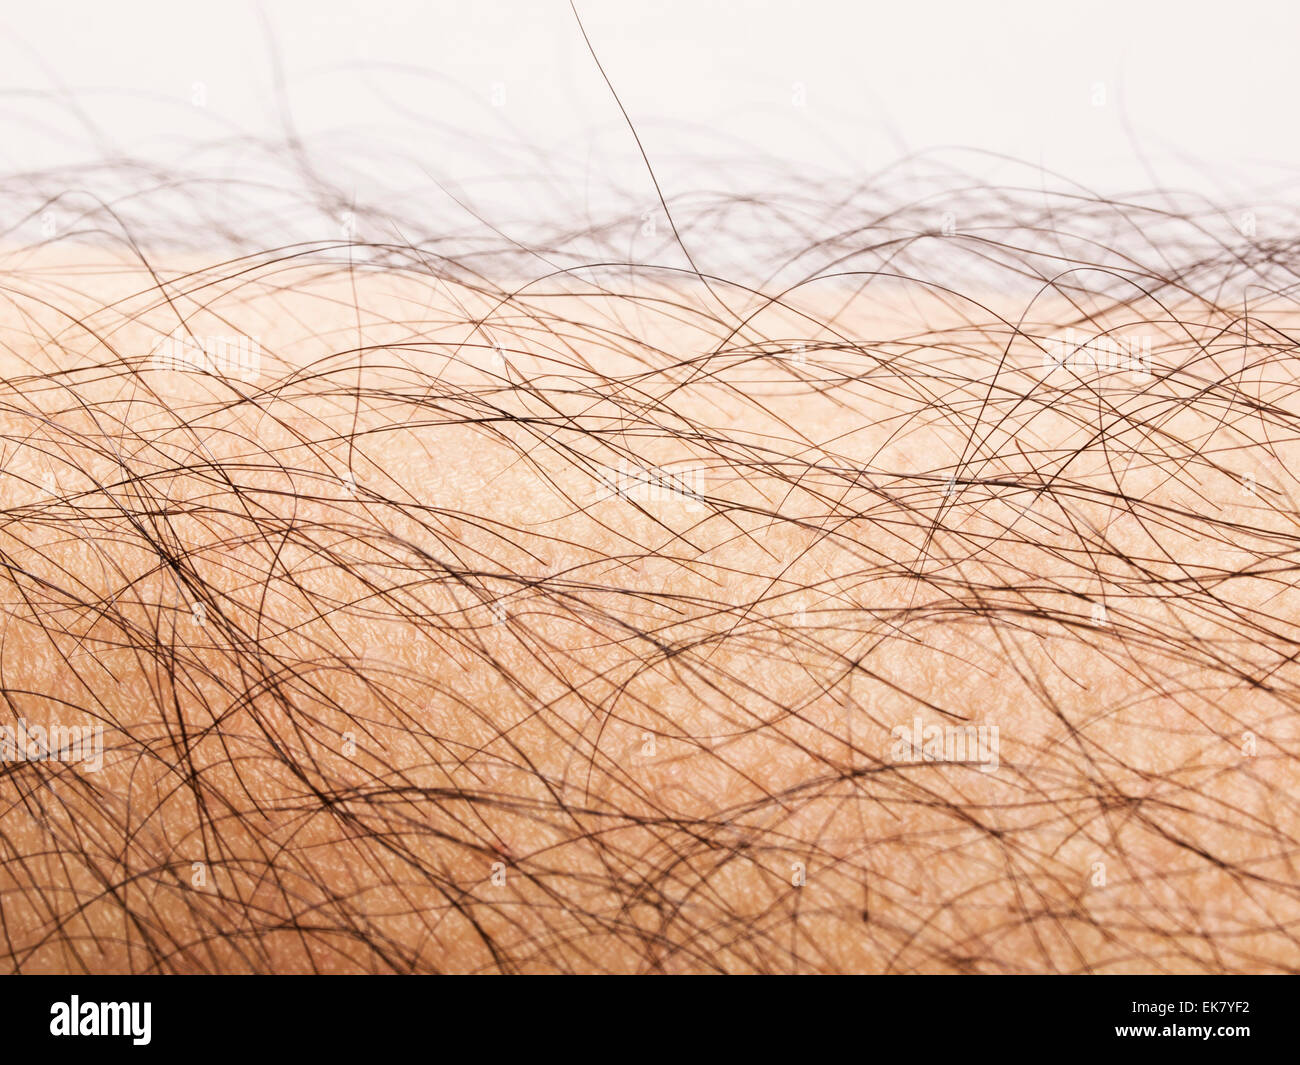 human body hair - Stock Image